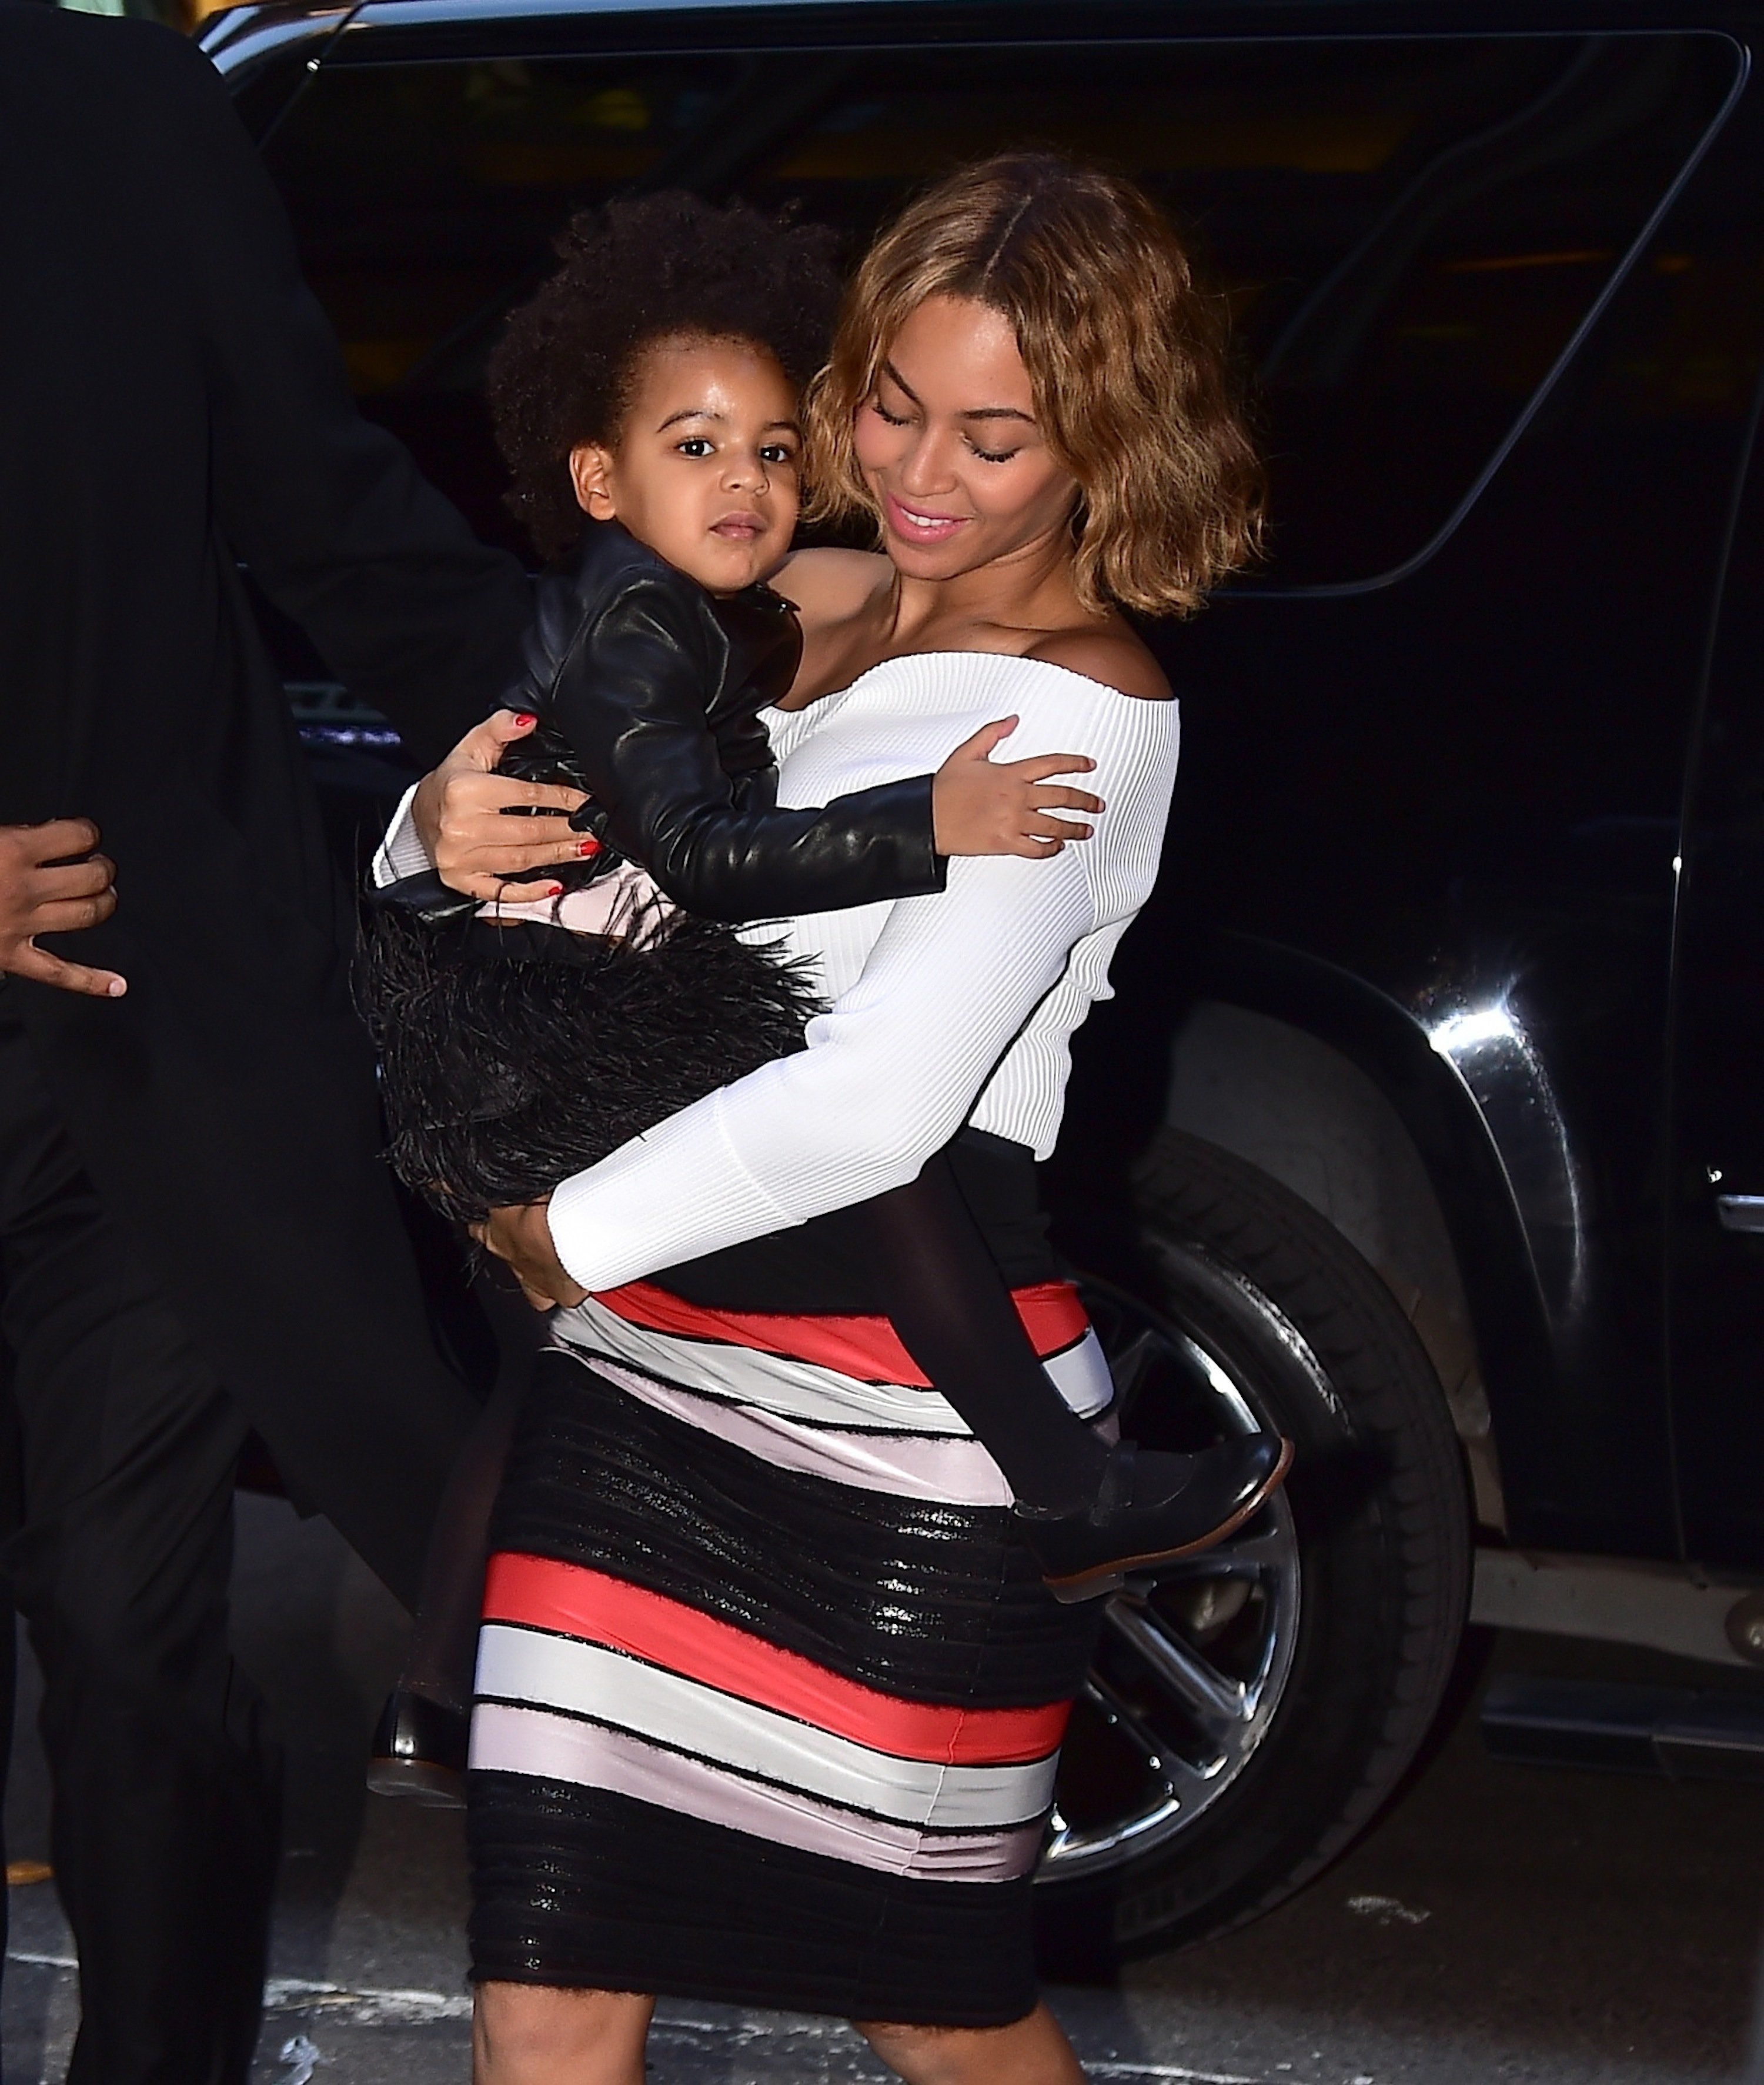 NEW YORK, NY - NOVEMBER 04:  Beyonce Knowles and  Blue Ivy Carter are seen in Midtown on November 4, 2014 in New York City.  (Photo by Alo Ceballos/GC Images)